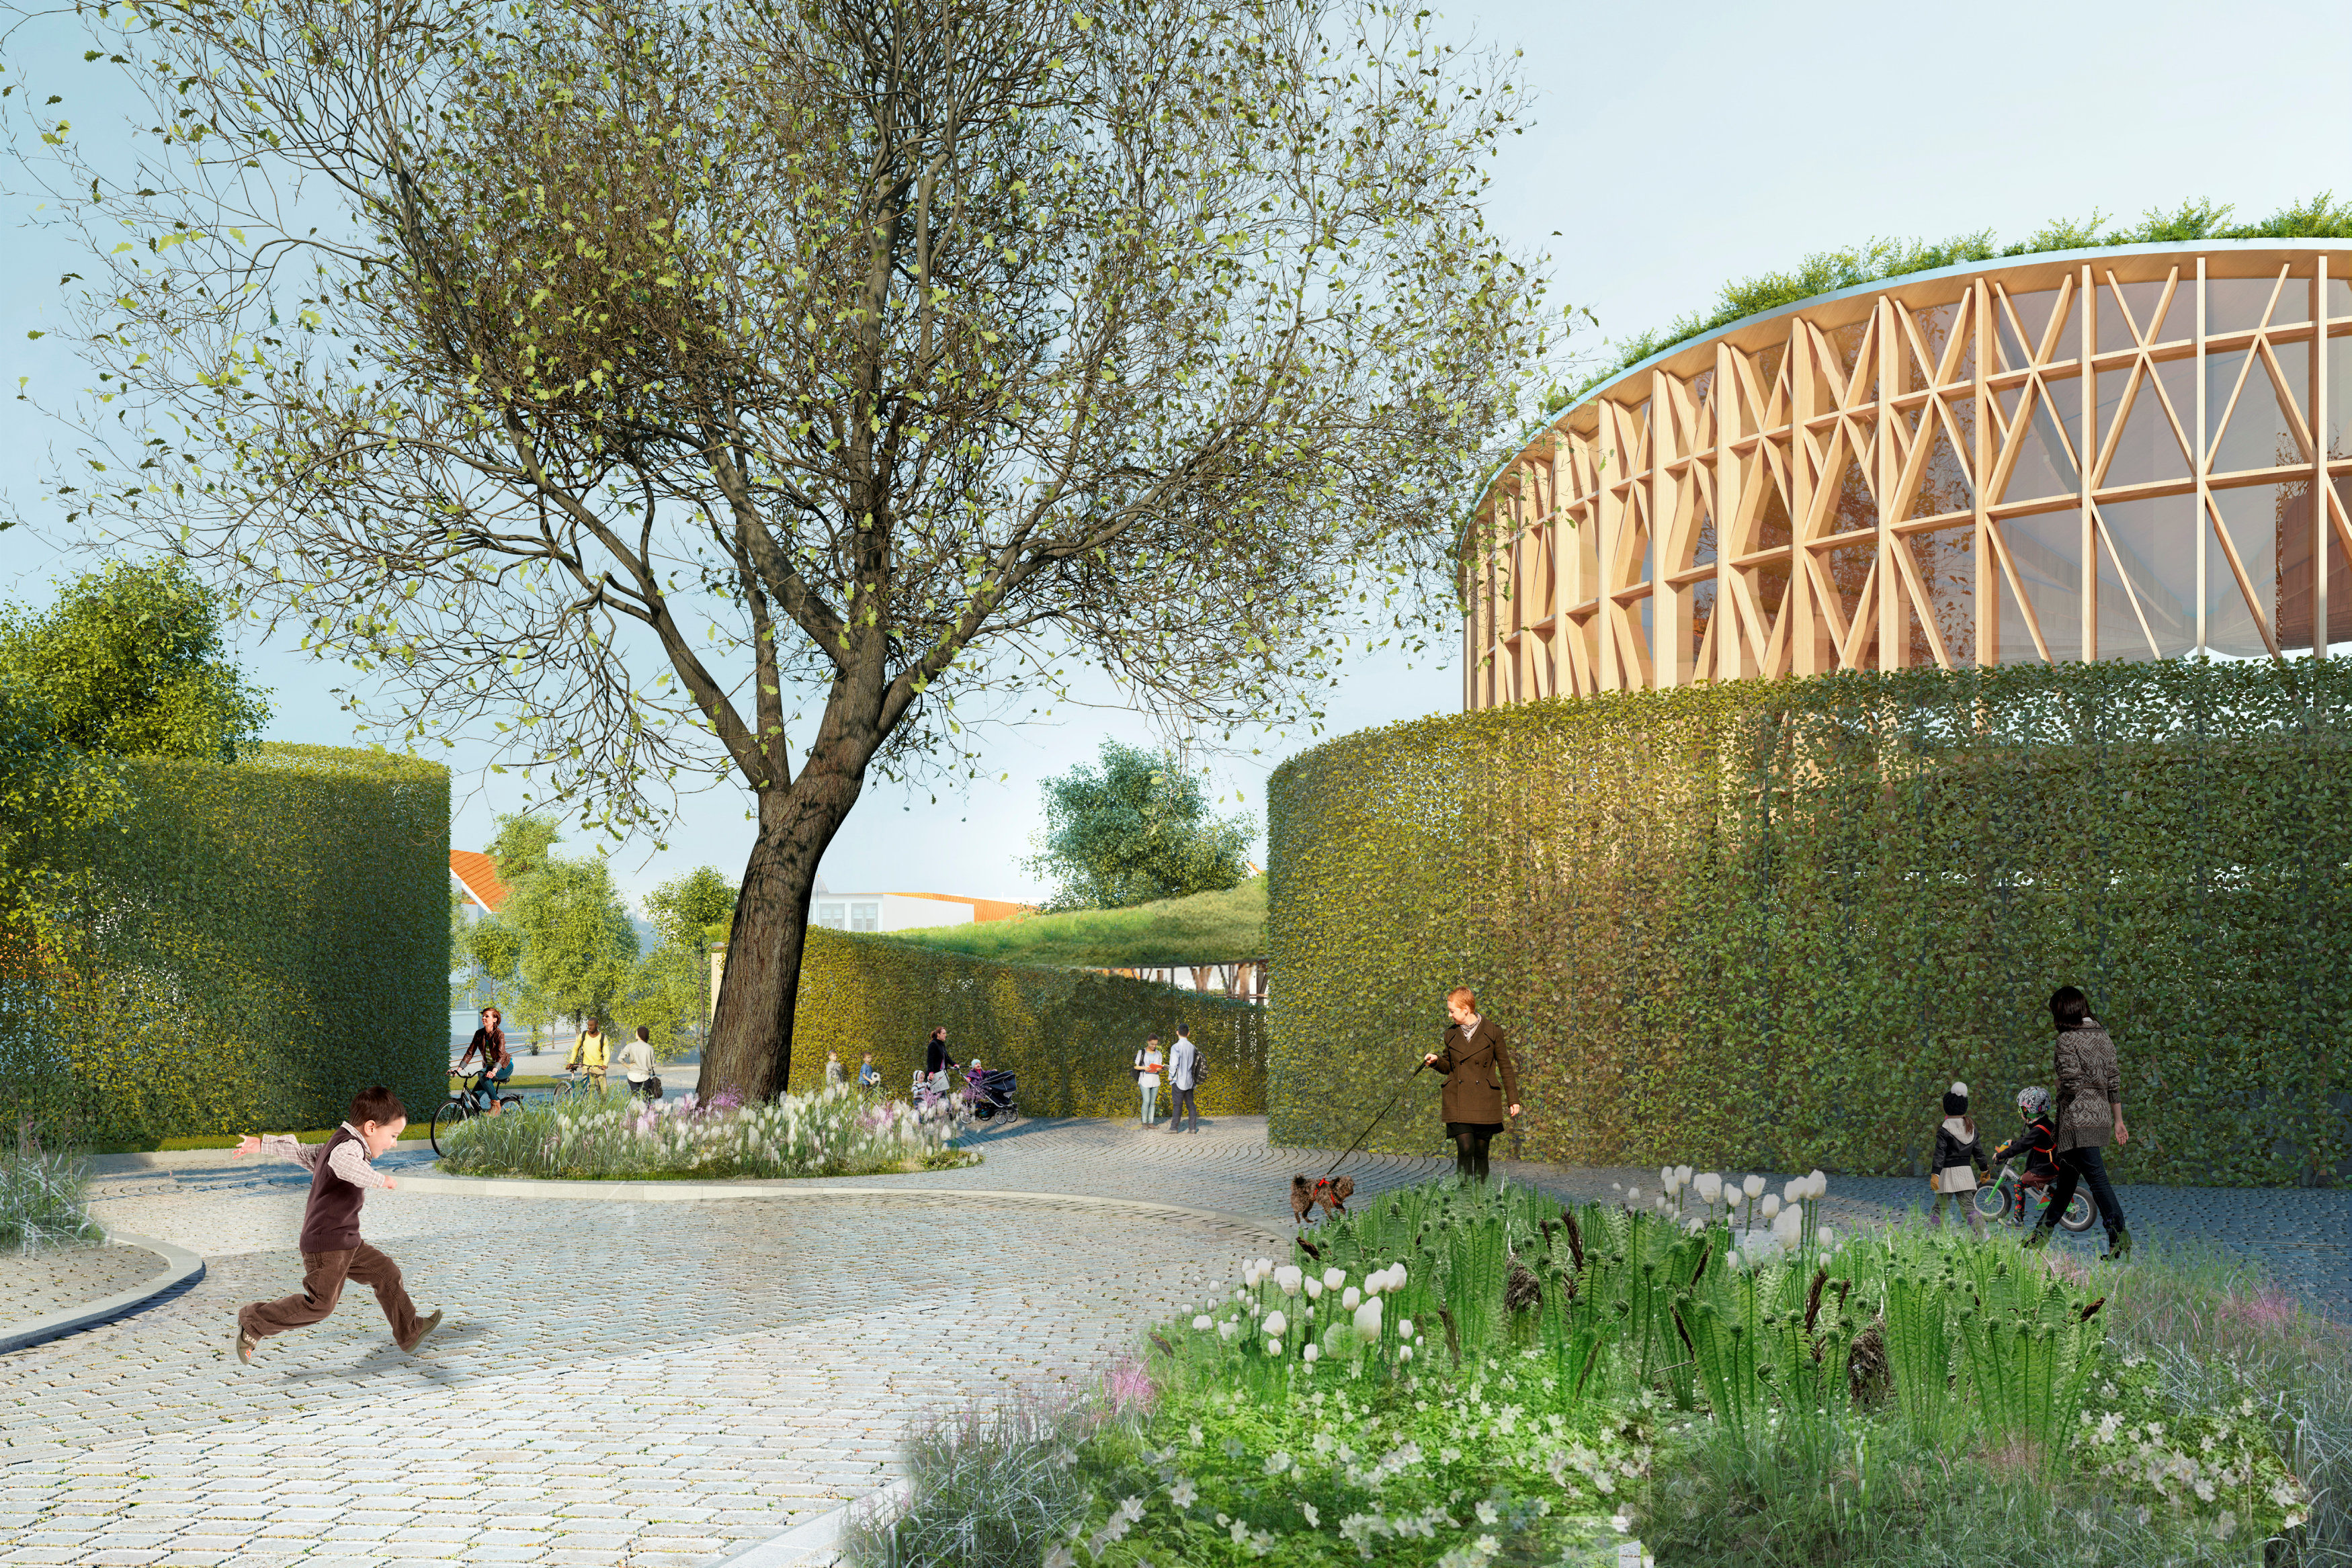 A new Hans Christian Andersen Museum in Odense is seen in an undated artist's rendering released by Odense City Museums in Odense, Denmark. Kengo Kuma & Associates, Cornelius+Voge, MASU planning/Handout via Reuters ATTENTION EDITORS - THIS IMAGE WAS PROVIDED BY A THIRD PARTY. EDITORIAL USE ONLY. NO RESALES. NO ARCHIVE. FOR EDITORIAL USE ONLY.